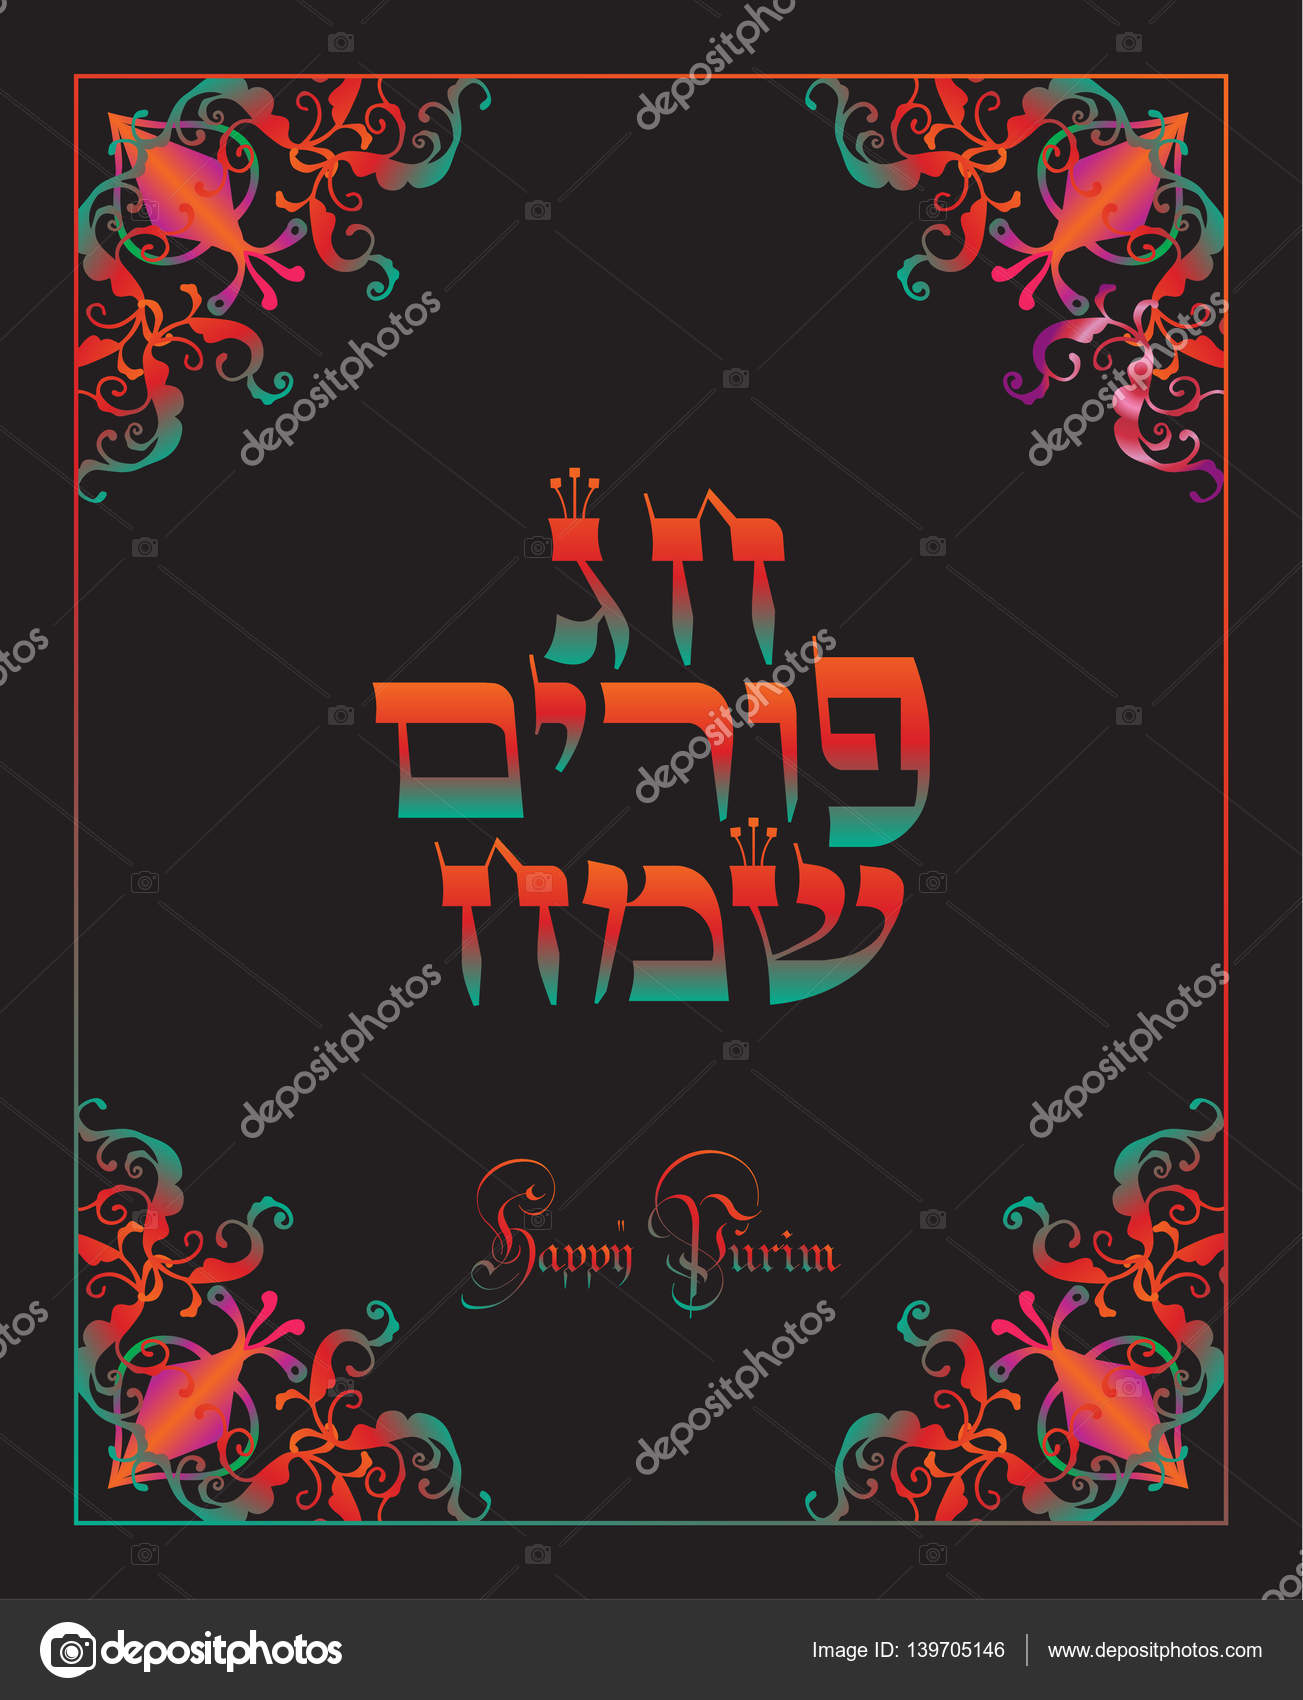 Happy purim greeting card translation from hebrew happy purim happy purim greeting card translation from hebrew happy purim purim jewish holiday poster decorated with traditional vintage border festive decoration m4hsunfo